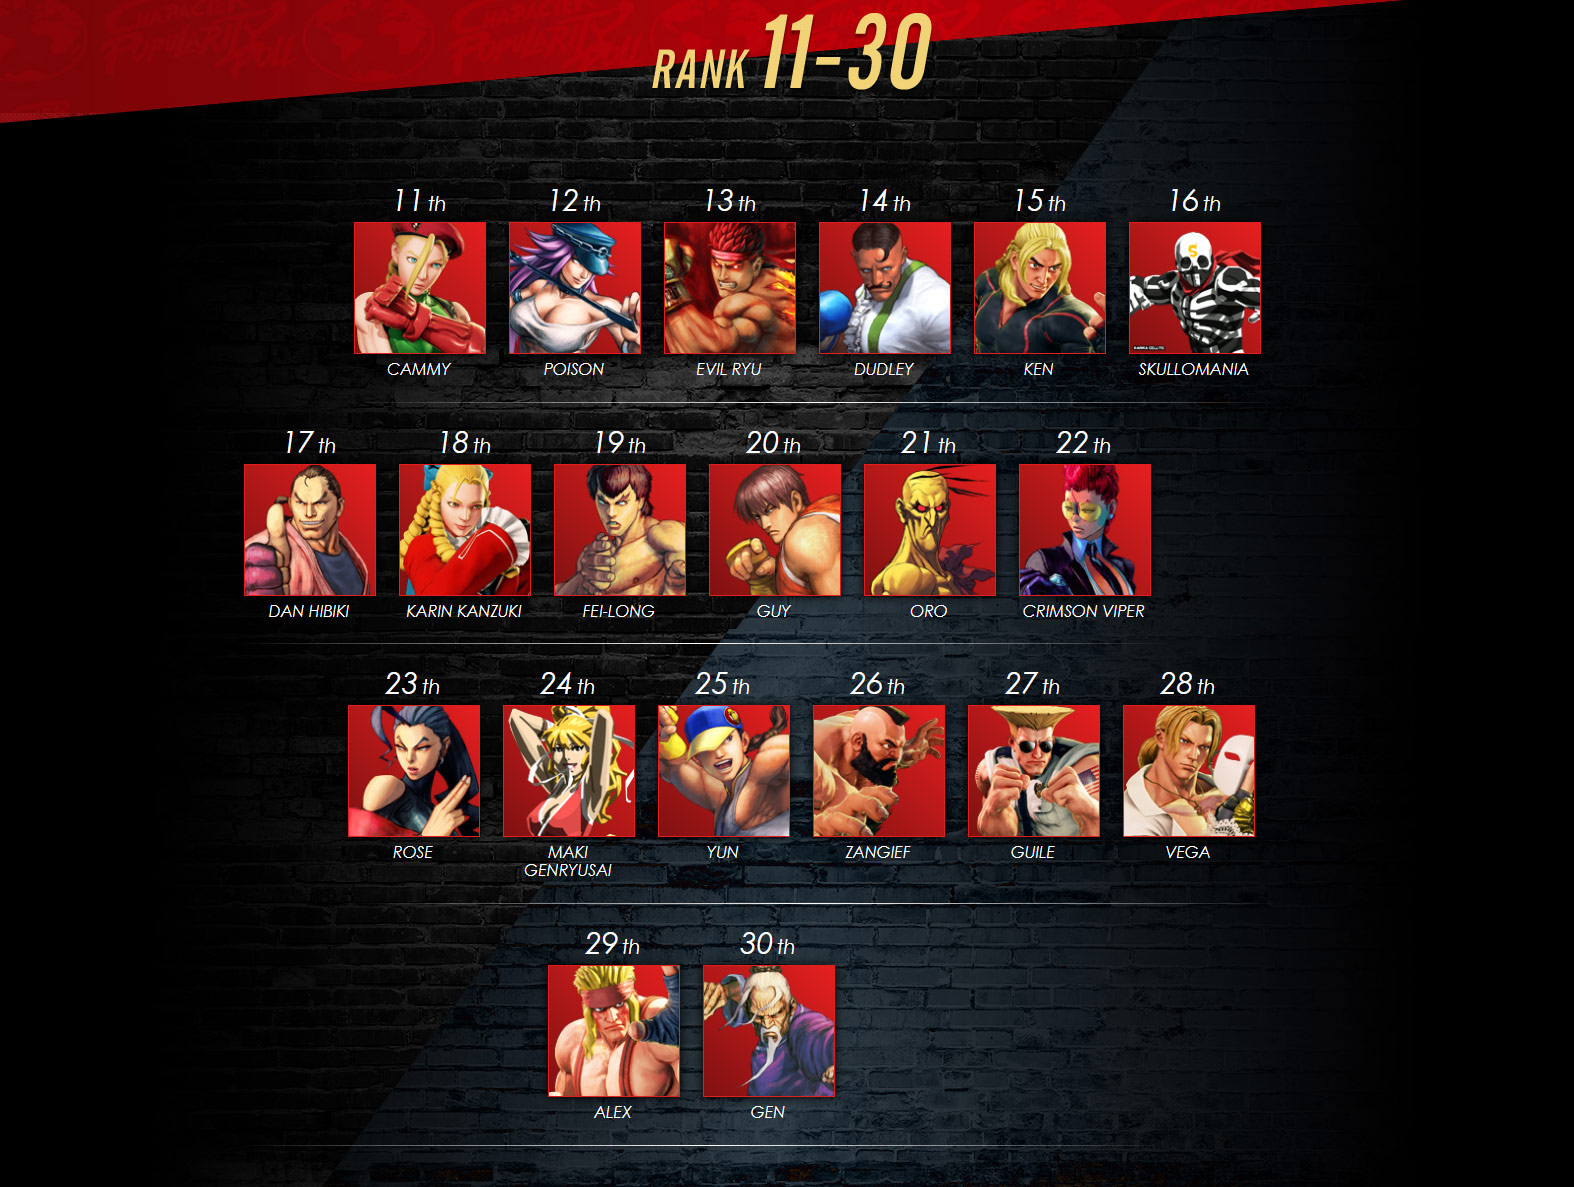 CFN Character Popularity Poll 2 out of 3 image gallery